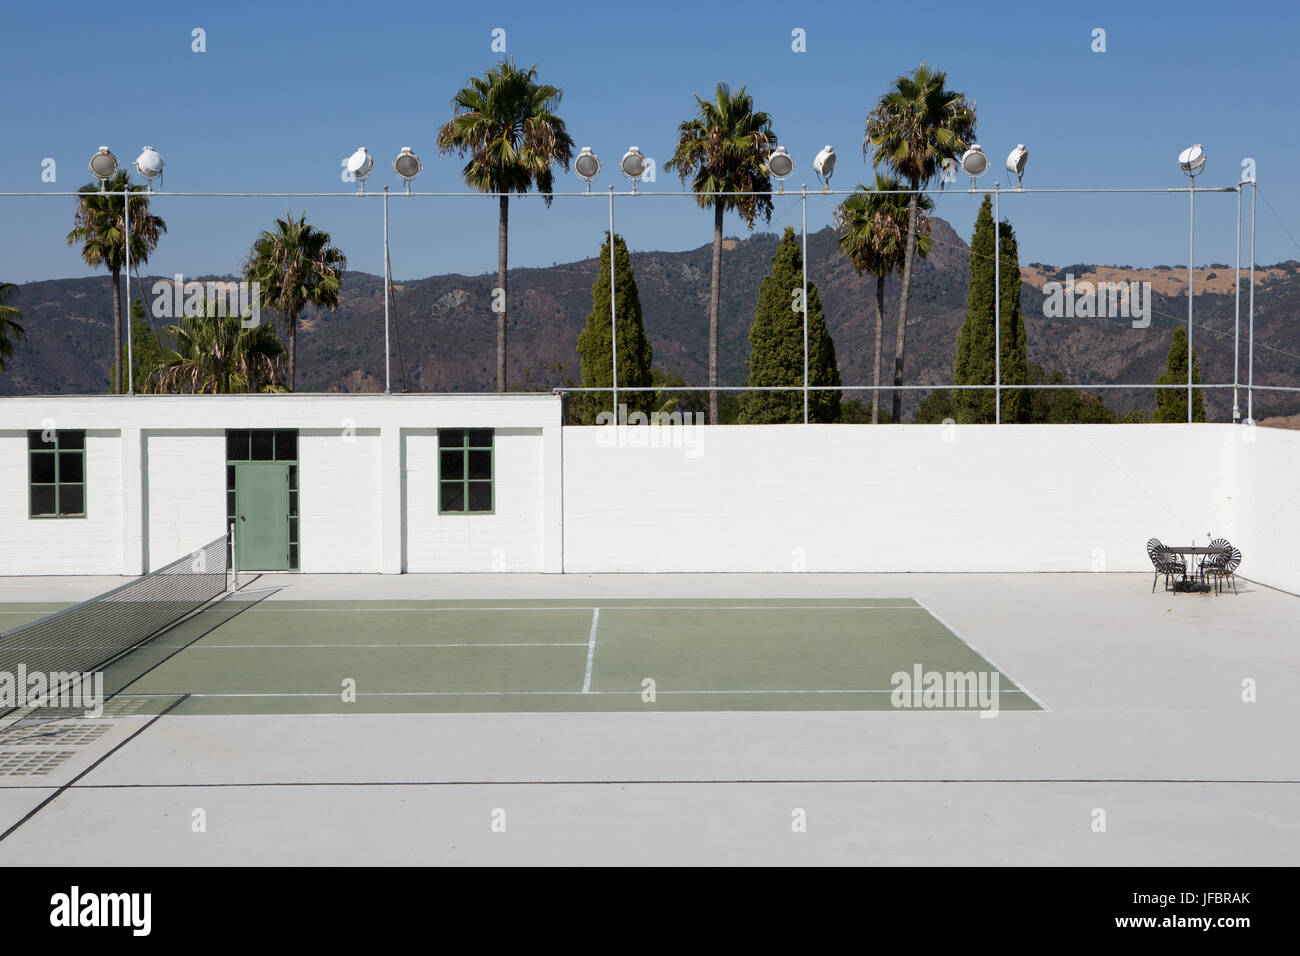 The tennis court at Hearst Castle. - Stock Image